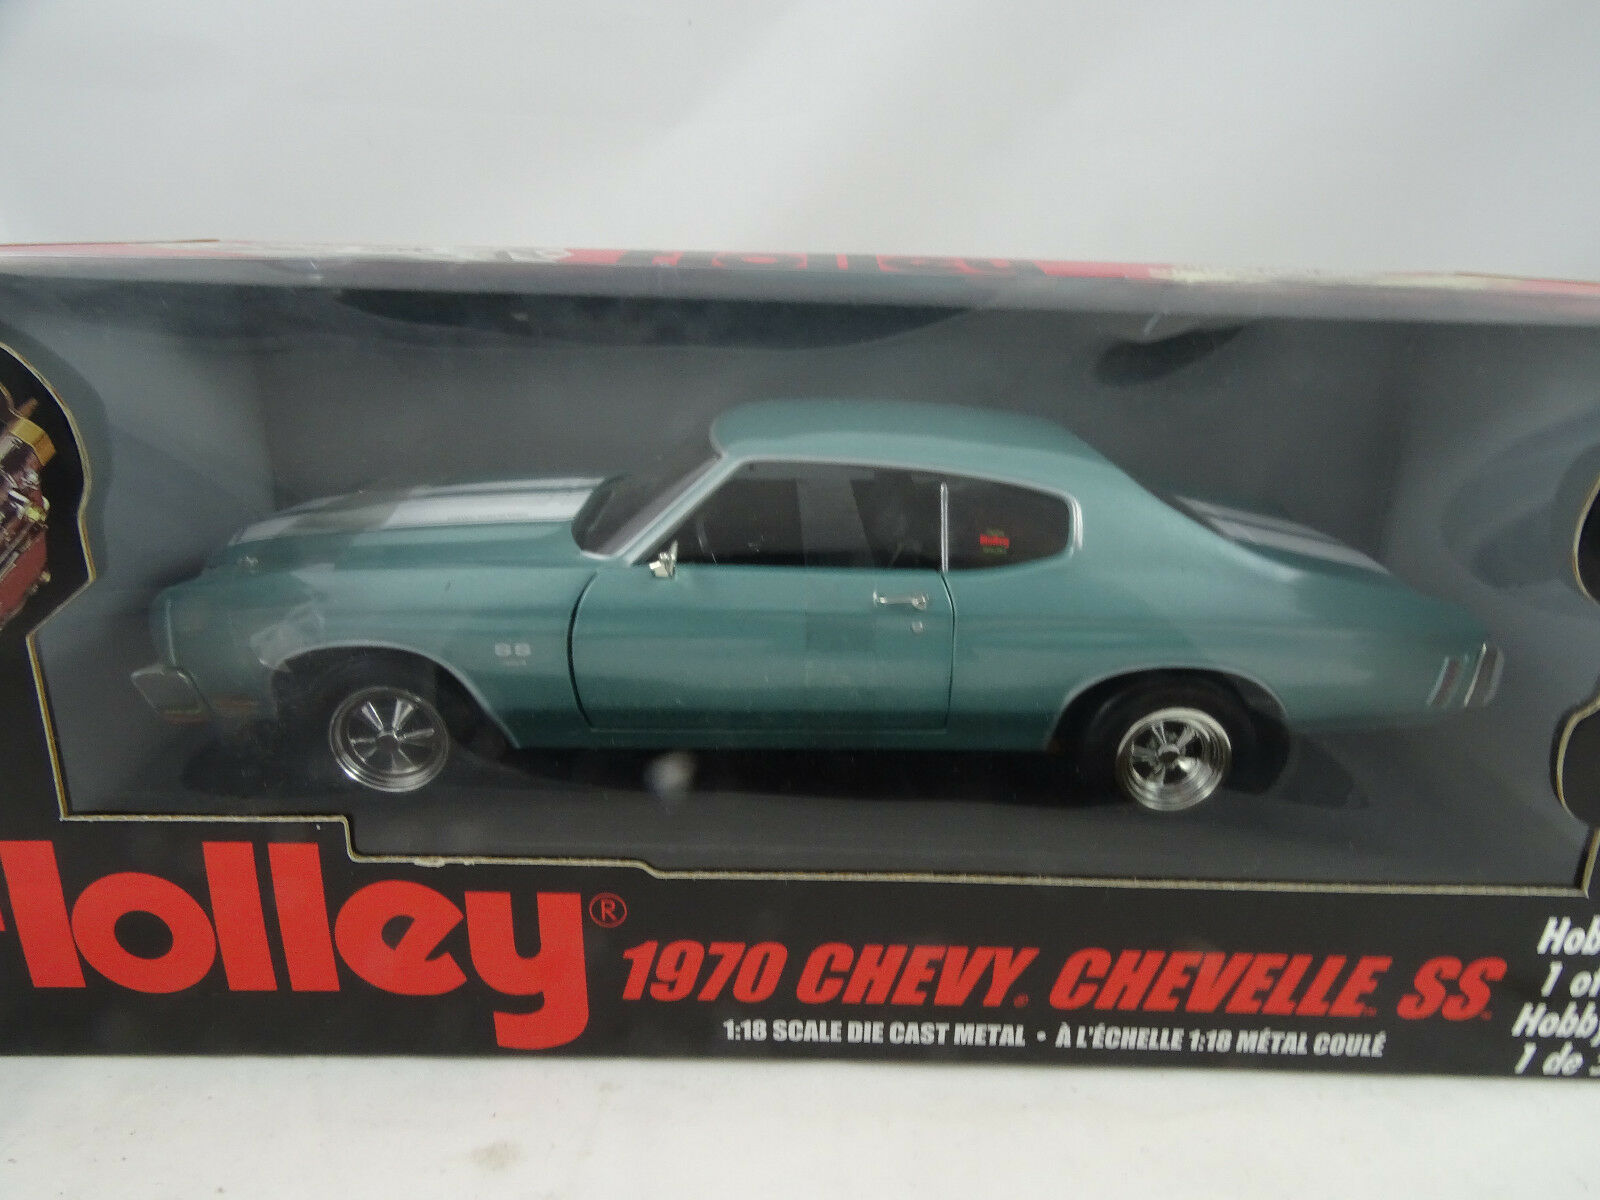 1:18 ERTL  36983 Holley 1970 Chevy Chevelle SS-rarità §